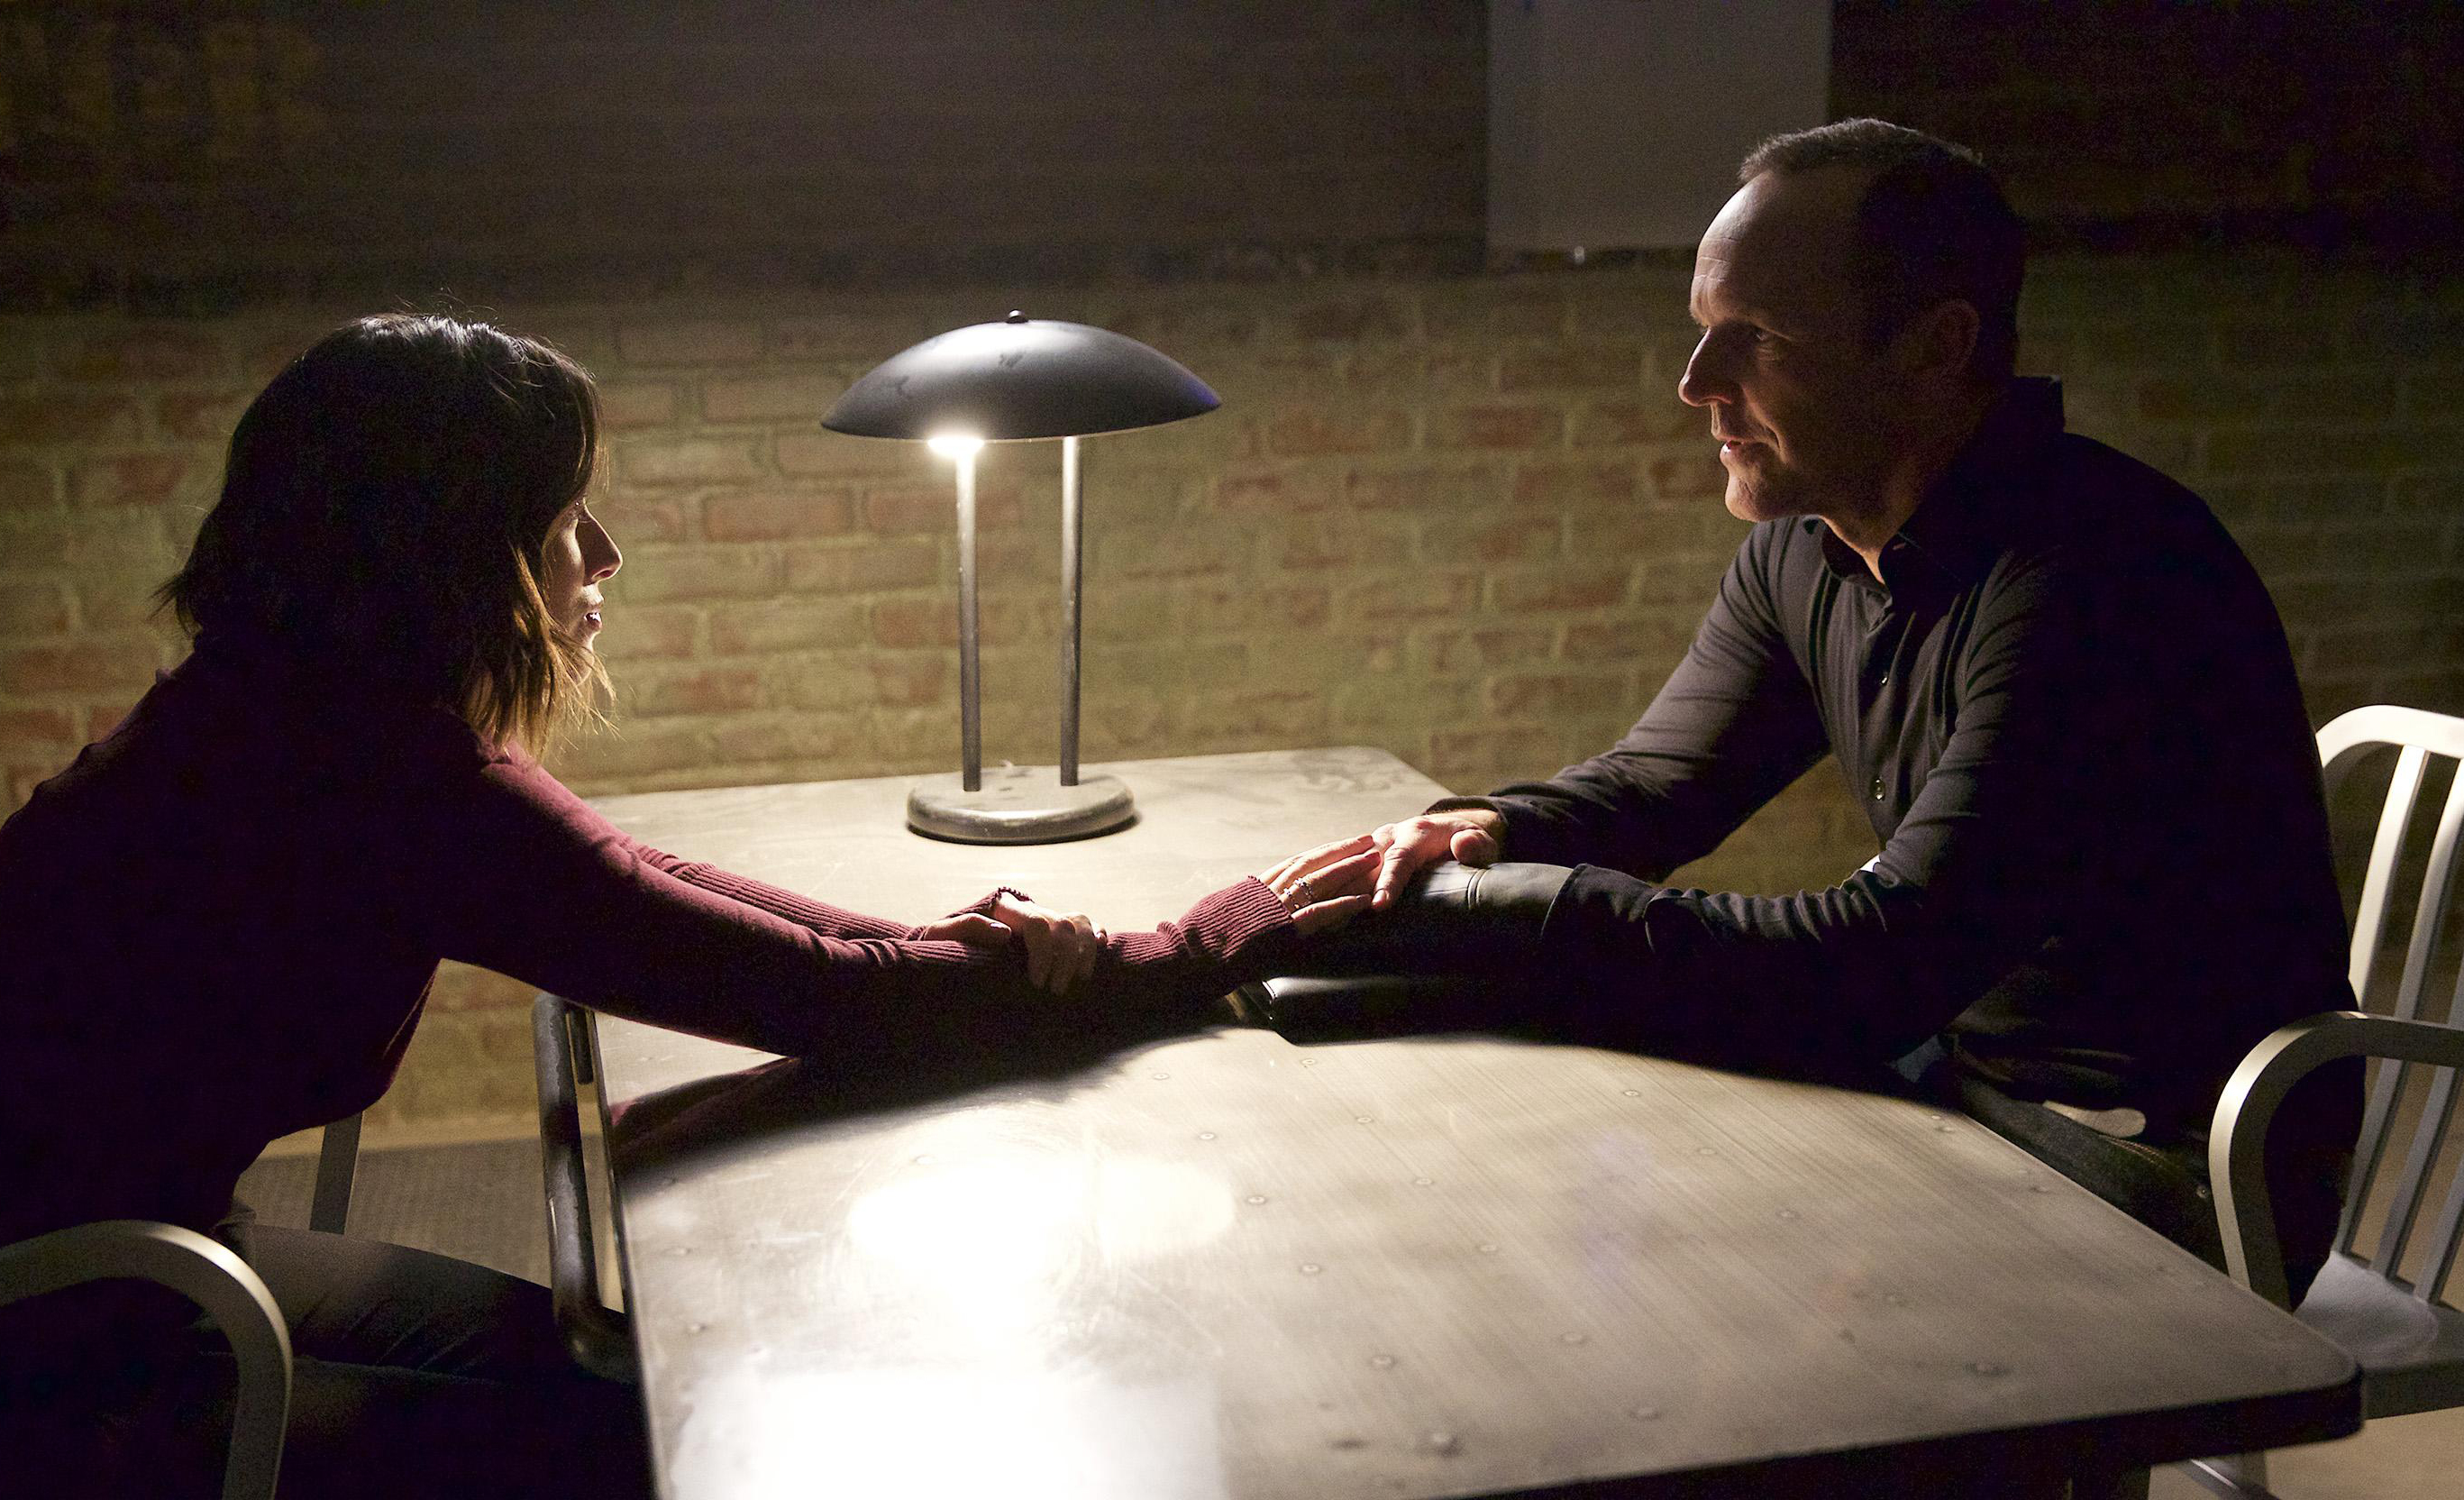 agents-of-shield-season-3-episode-9-still-02